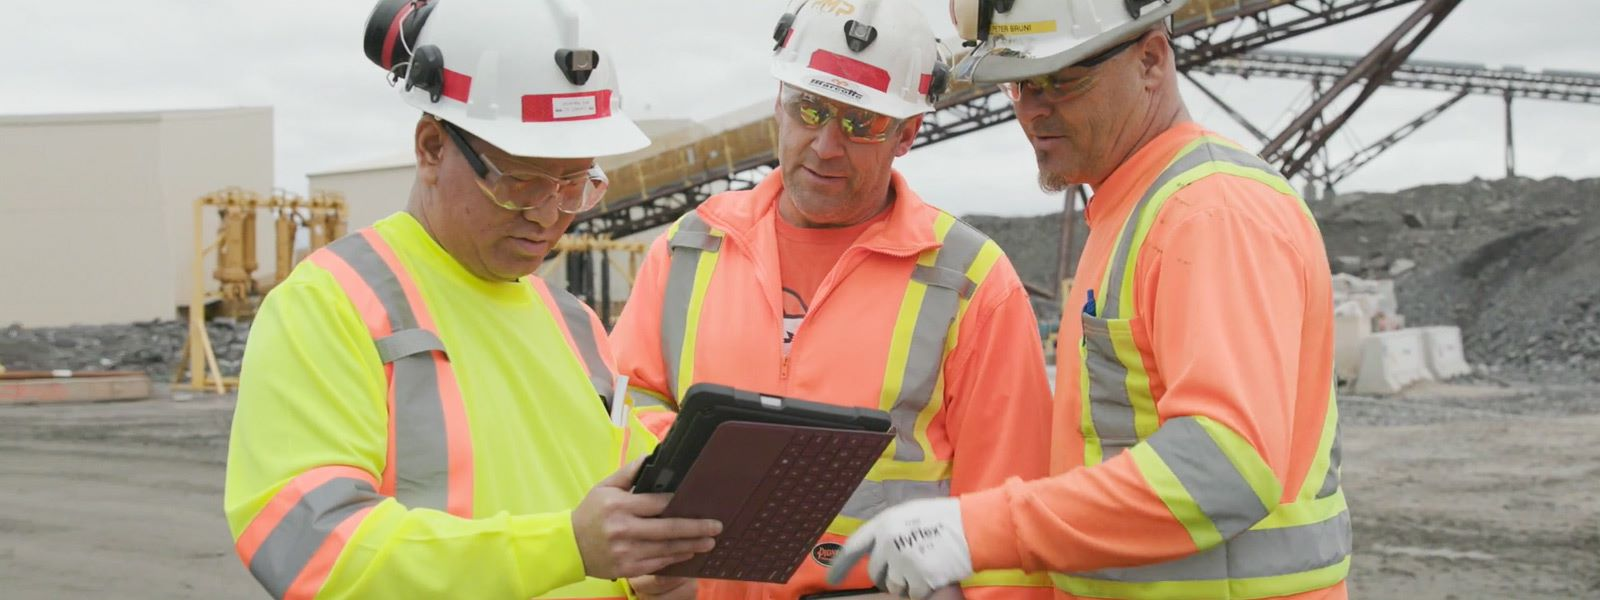 Three construction workers looking at a Surface Go on a job site